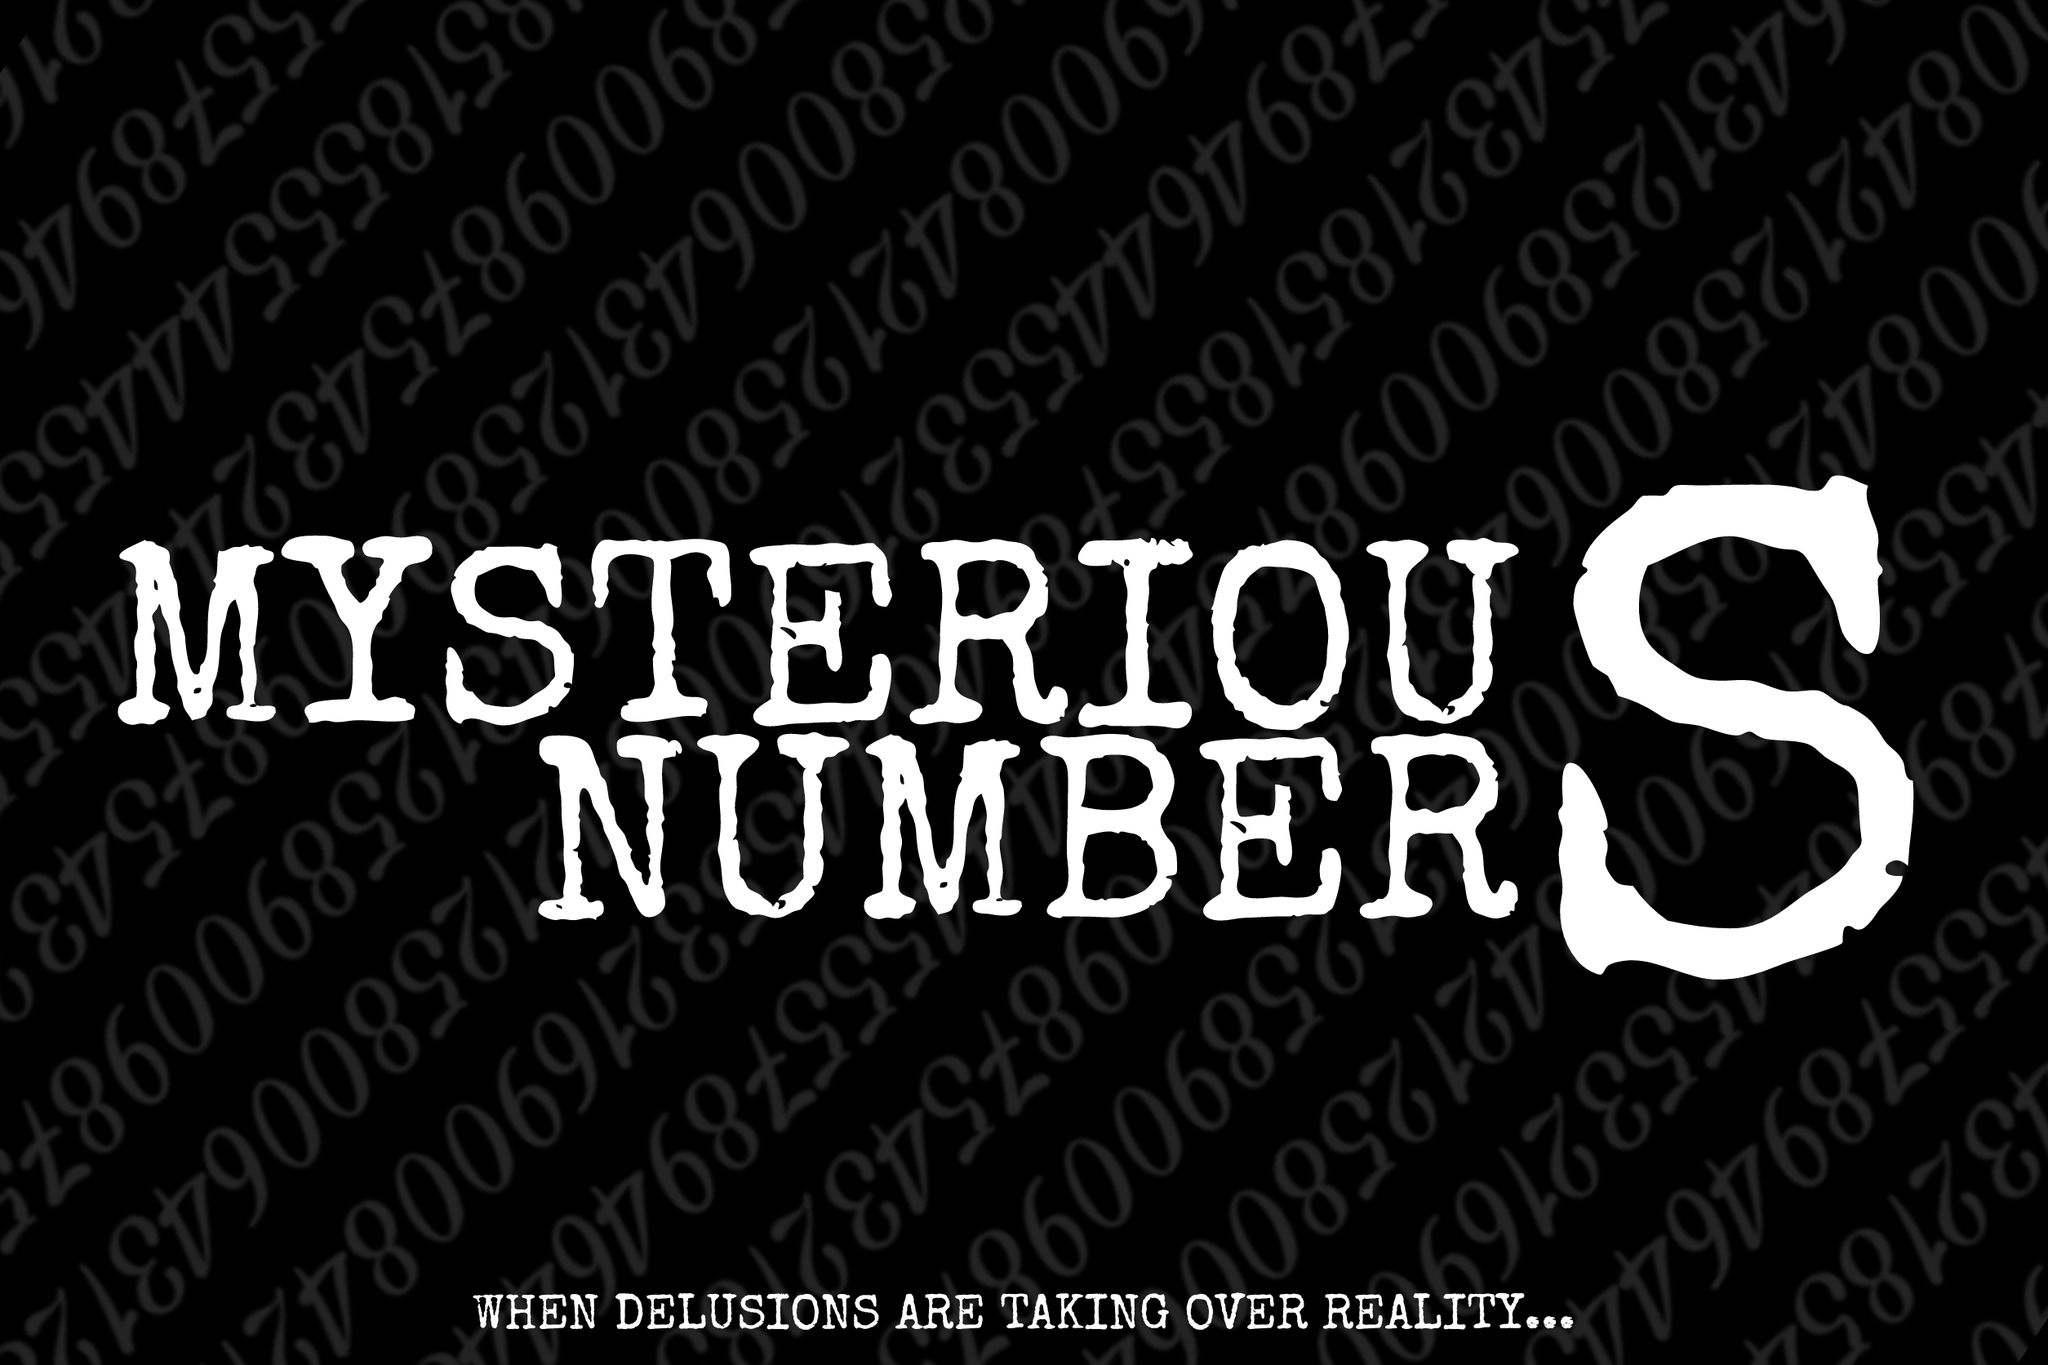 MYSTERIOUS NUMBERS